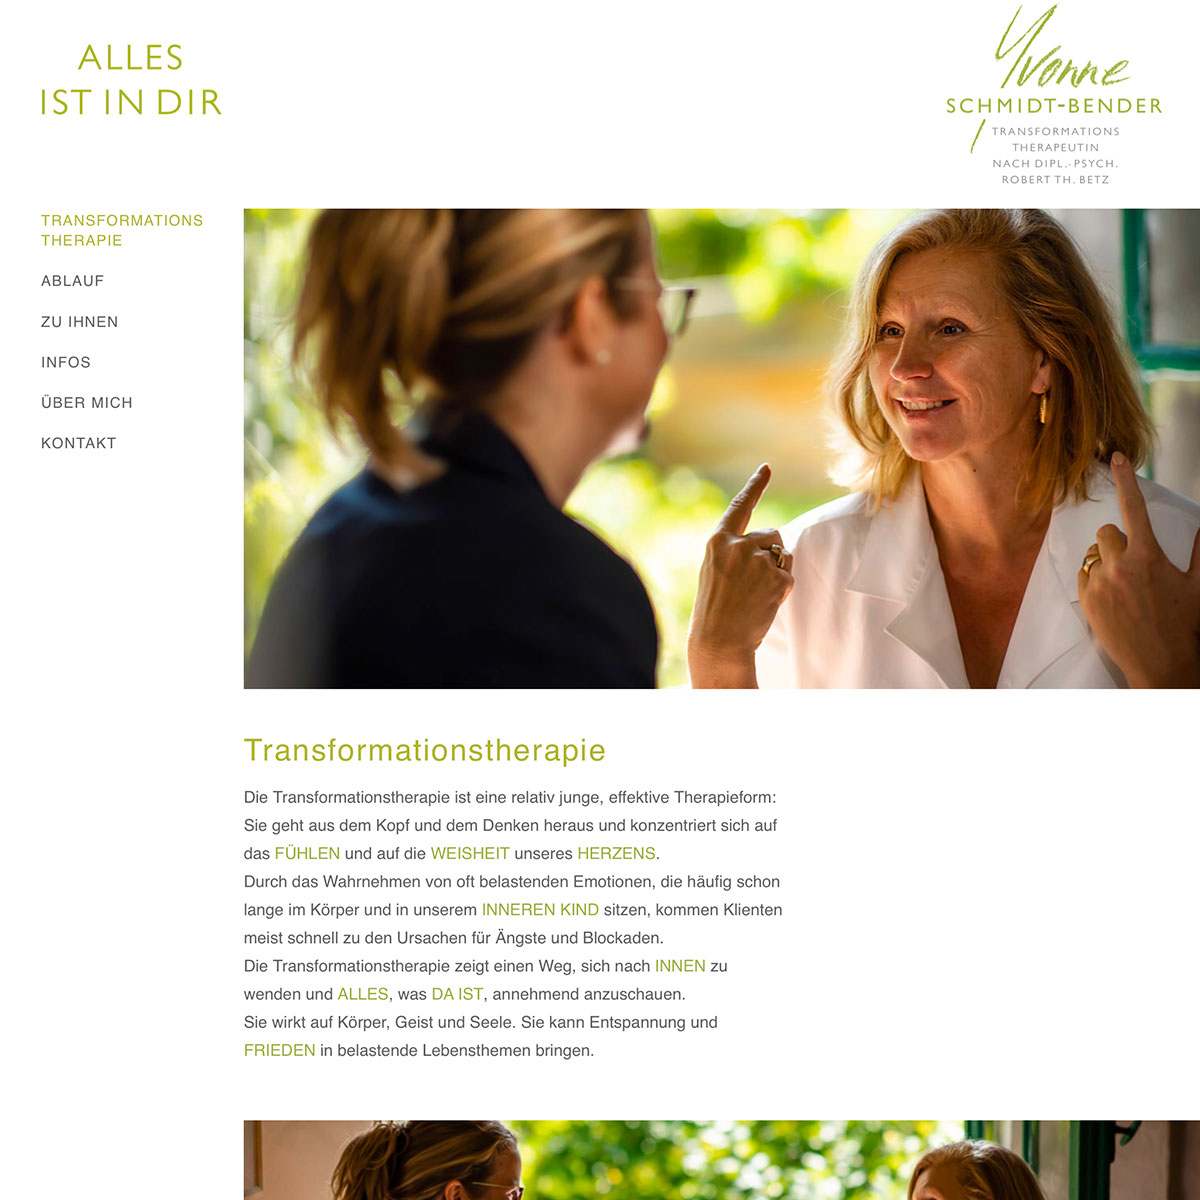 Alles ist in Dir - Coachess für Transformationstherapie